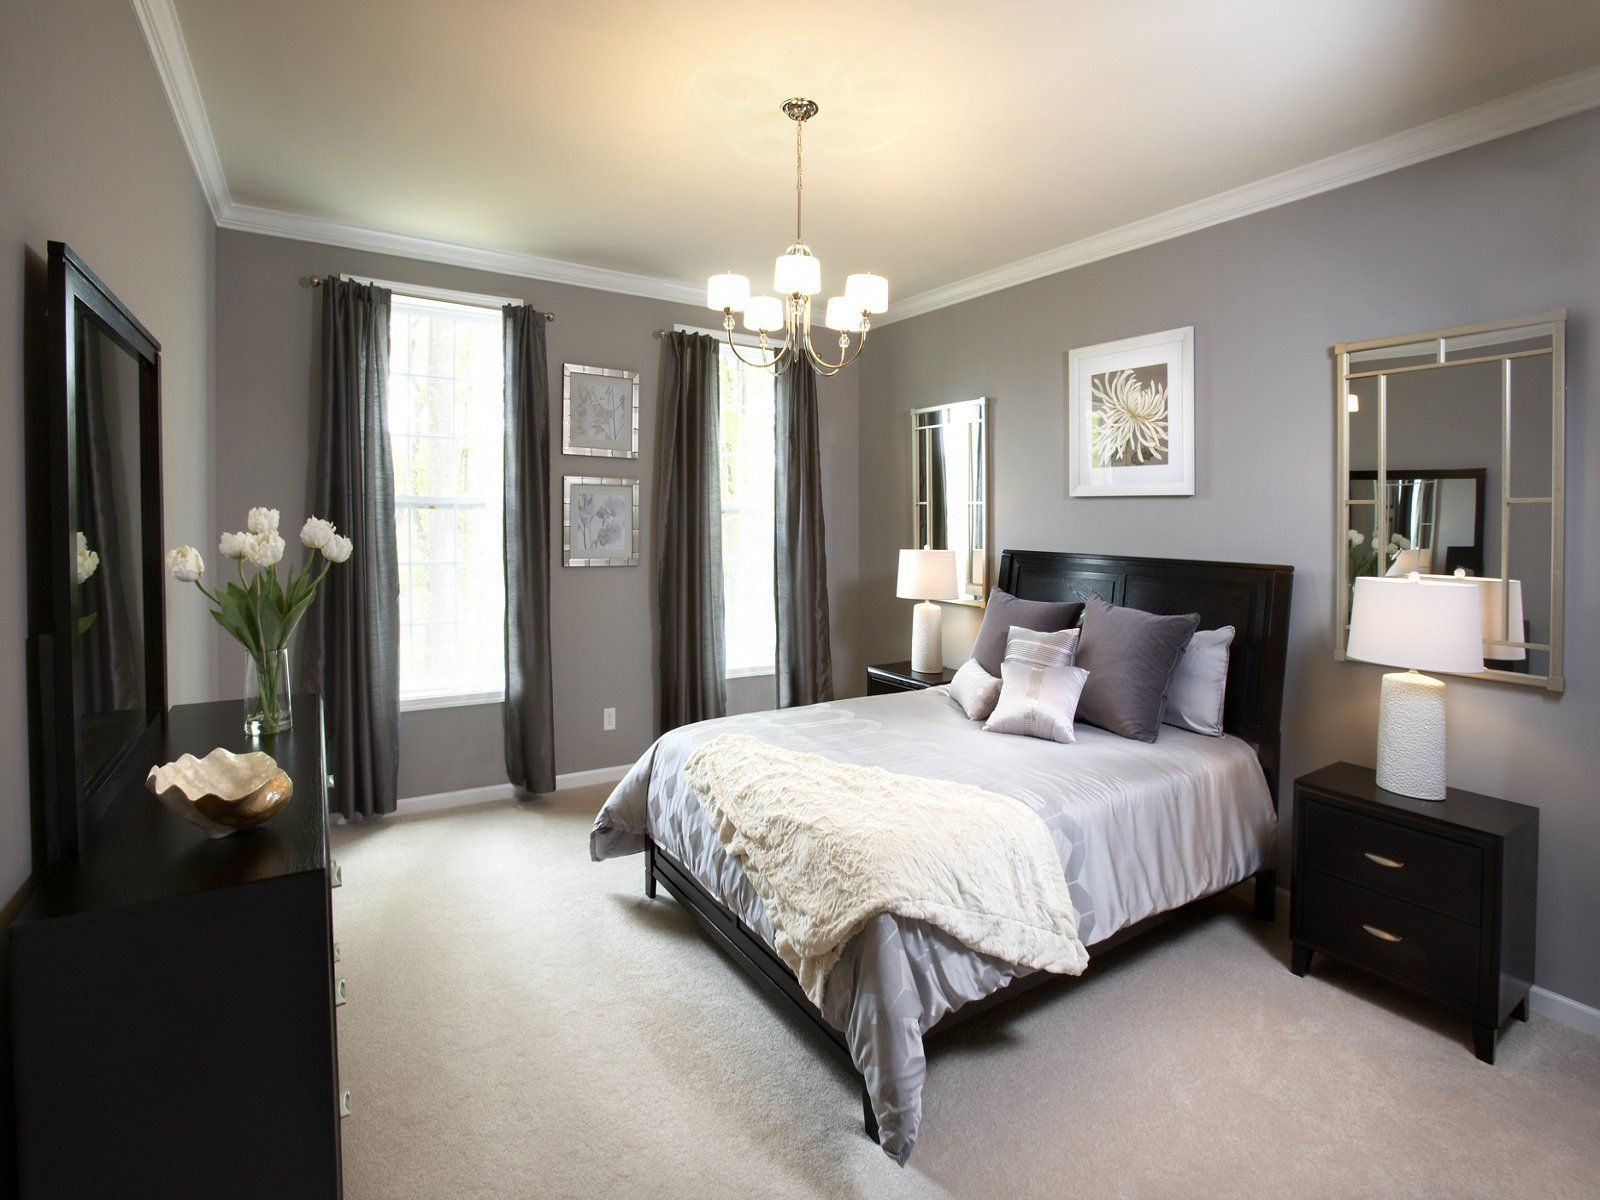 BedroomPaint Color Ideas For Master Bedroom Buffet